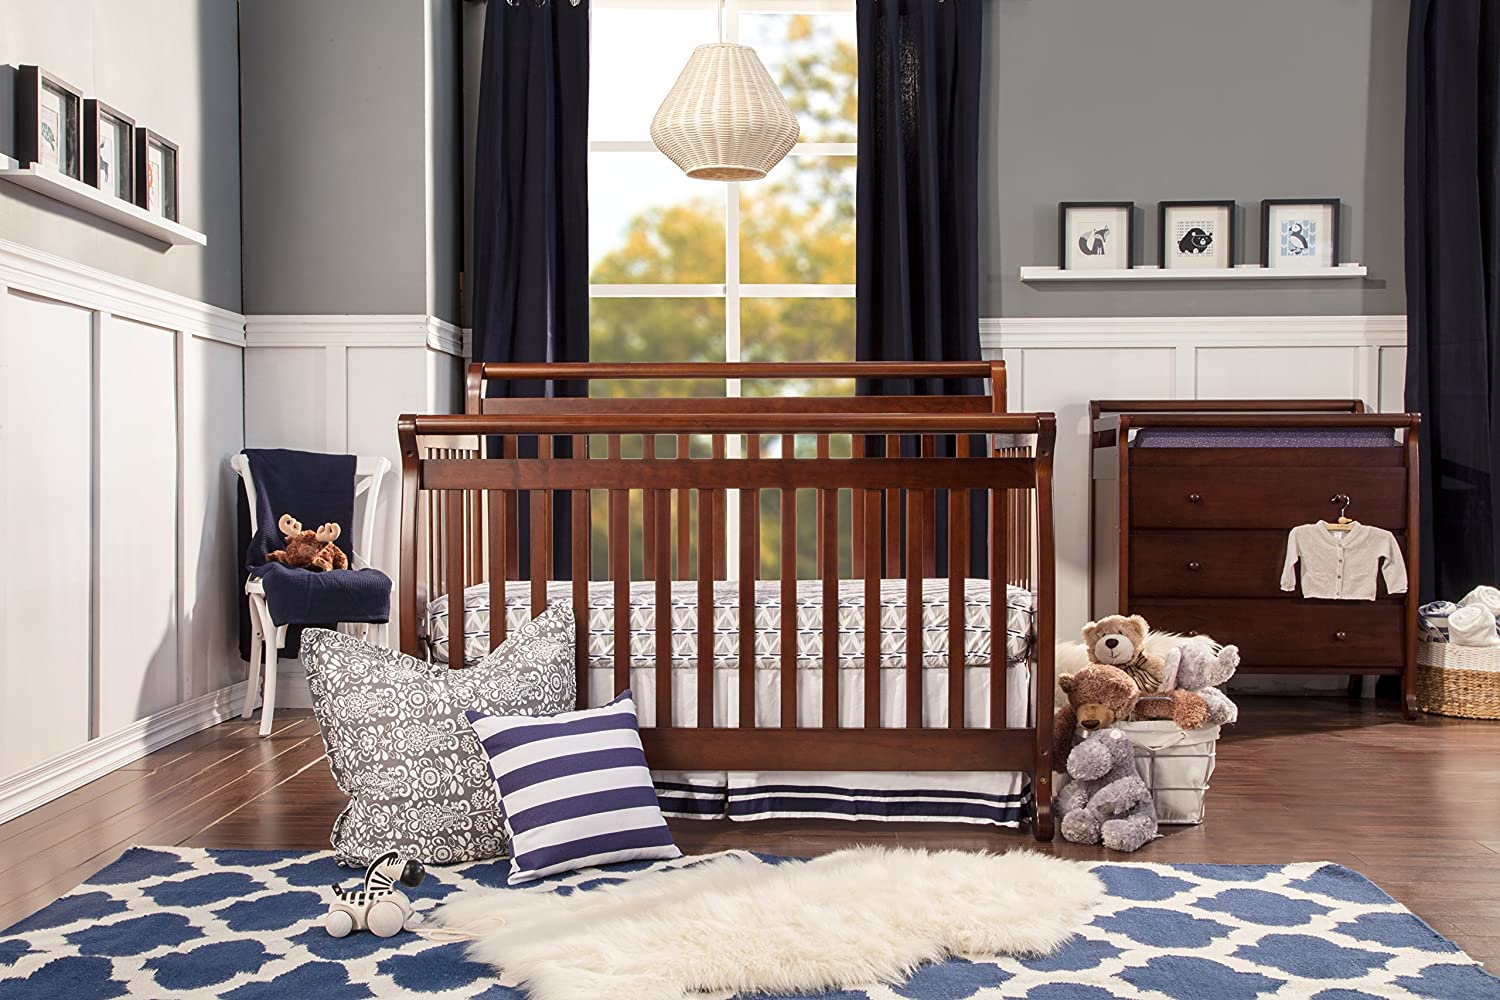 Baby bed hs code - Amazon Com Davinci Emily 4 In 1 Convertible Crib In Espresso Finish Toddler Beds Baby